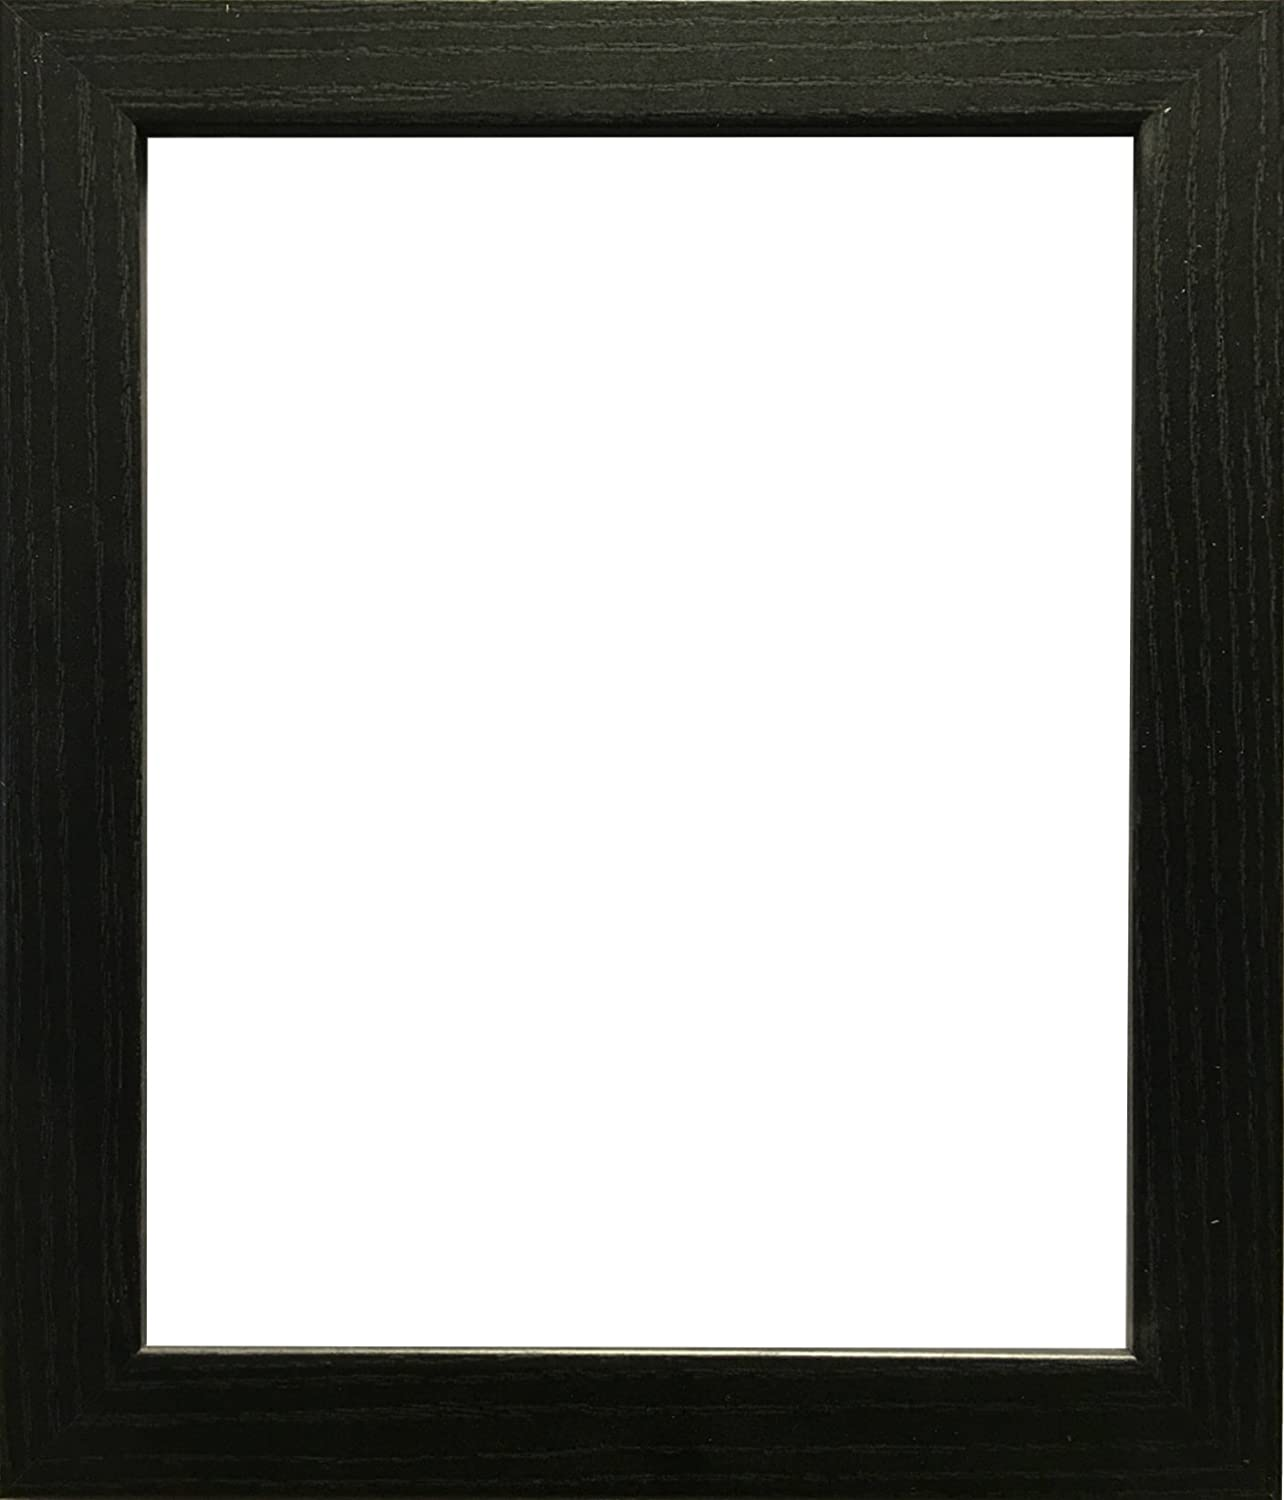 Convenient2you A2 Photo Frame Picture Frame Black Wood Wooden Effect A2 594x420 Mm Black Amazon Co Uk Kitchen Home